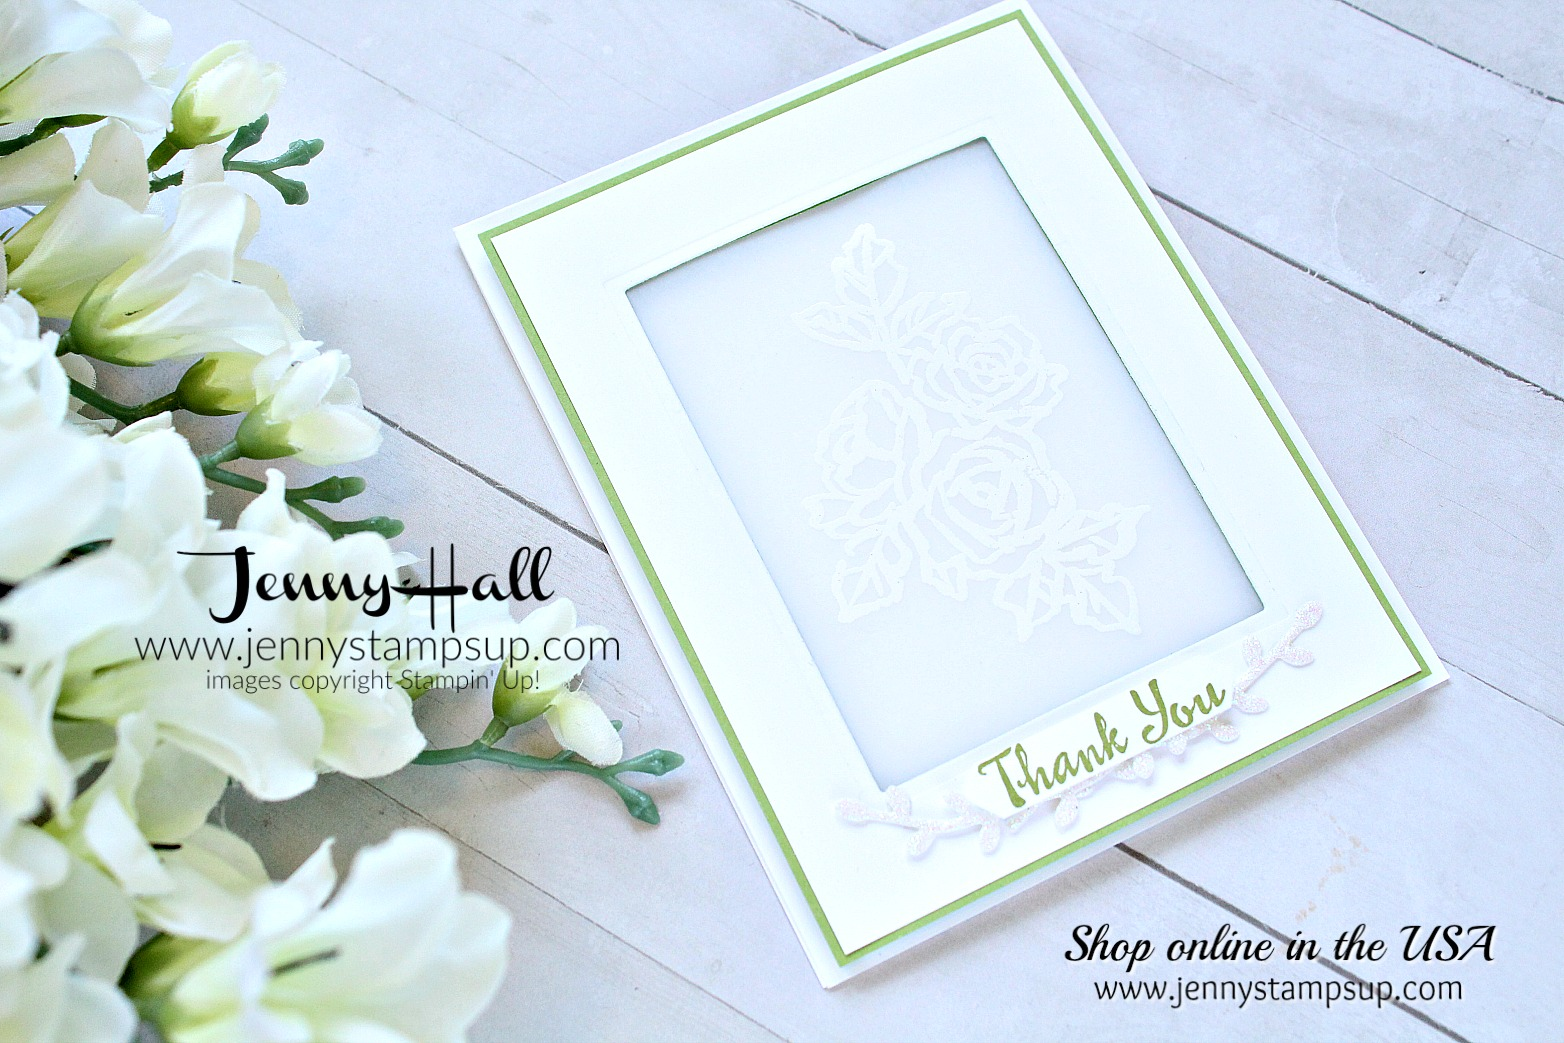 Go For Greece Blog Hop card featuring Petal Palette bundle created by Jenny Hall at www.jennystampsup.com for #cardmaking #stamping #stampinup #vellum #greenandwhitedesign #cascards #cleanandsimplecards #jennyhall #jennyhalldesign #jennyhallstampinup #jennystampsup #bloghop #videotutorial #youtuber #crafts #papercrafts #lifestyle